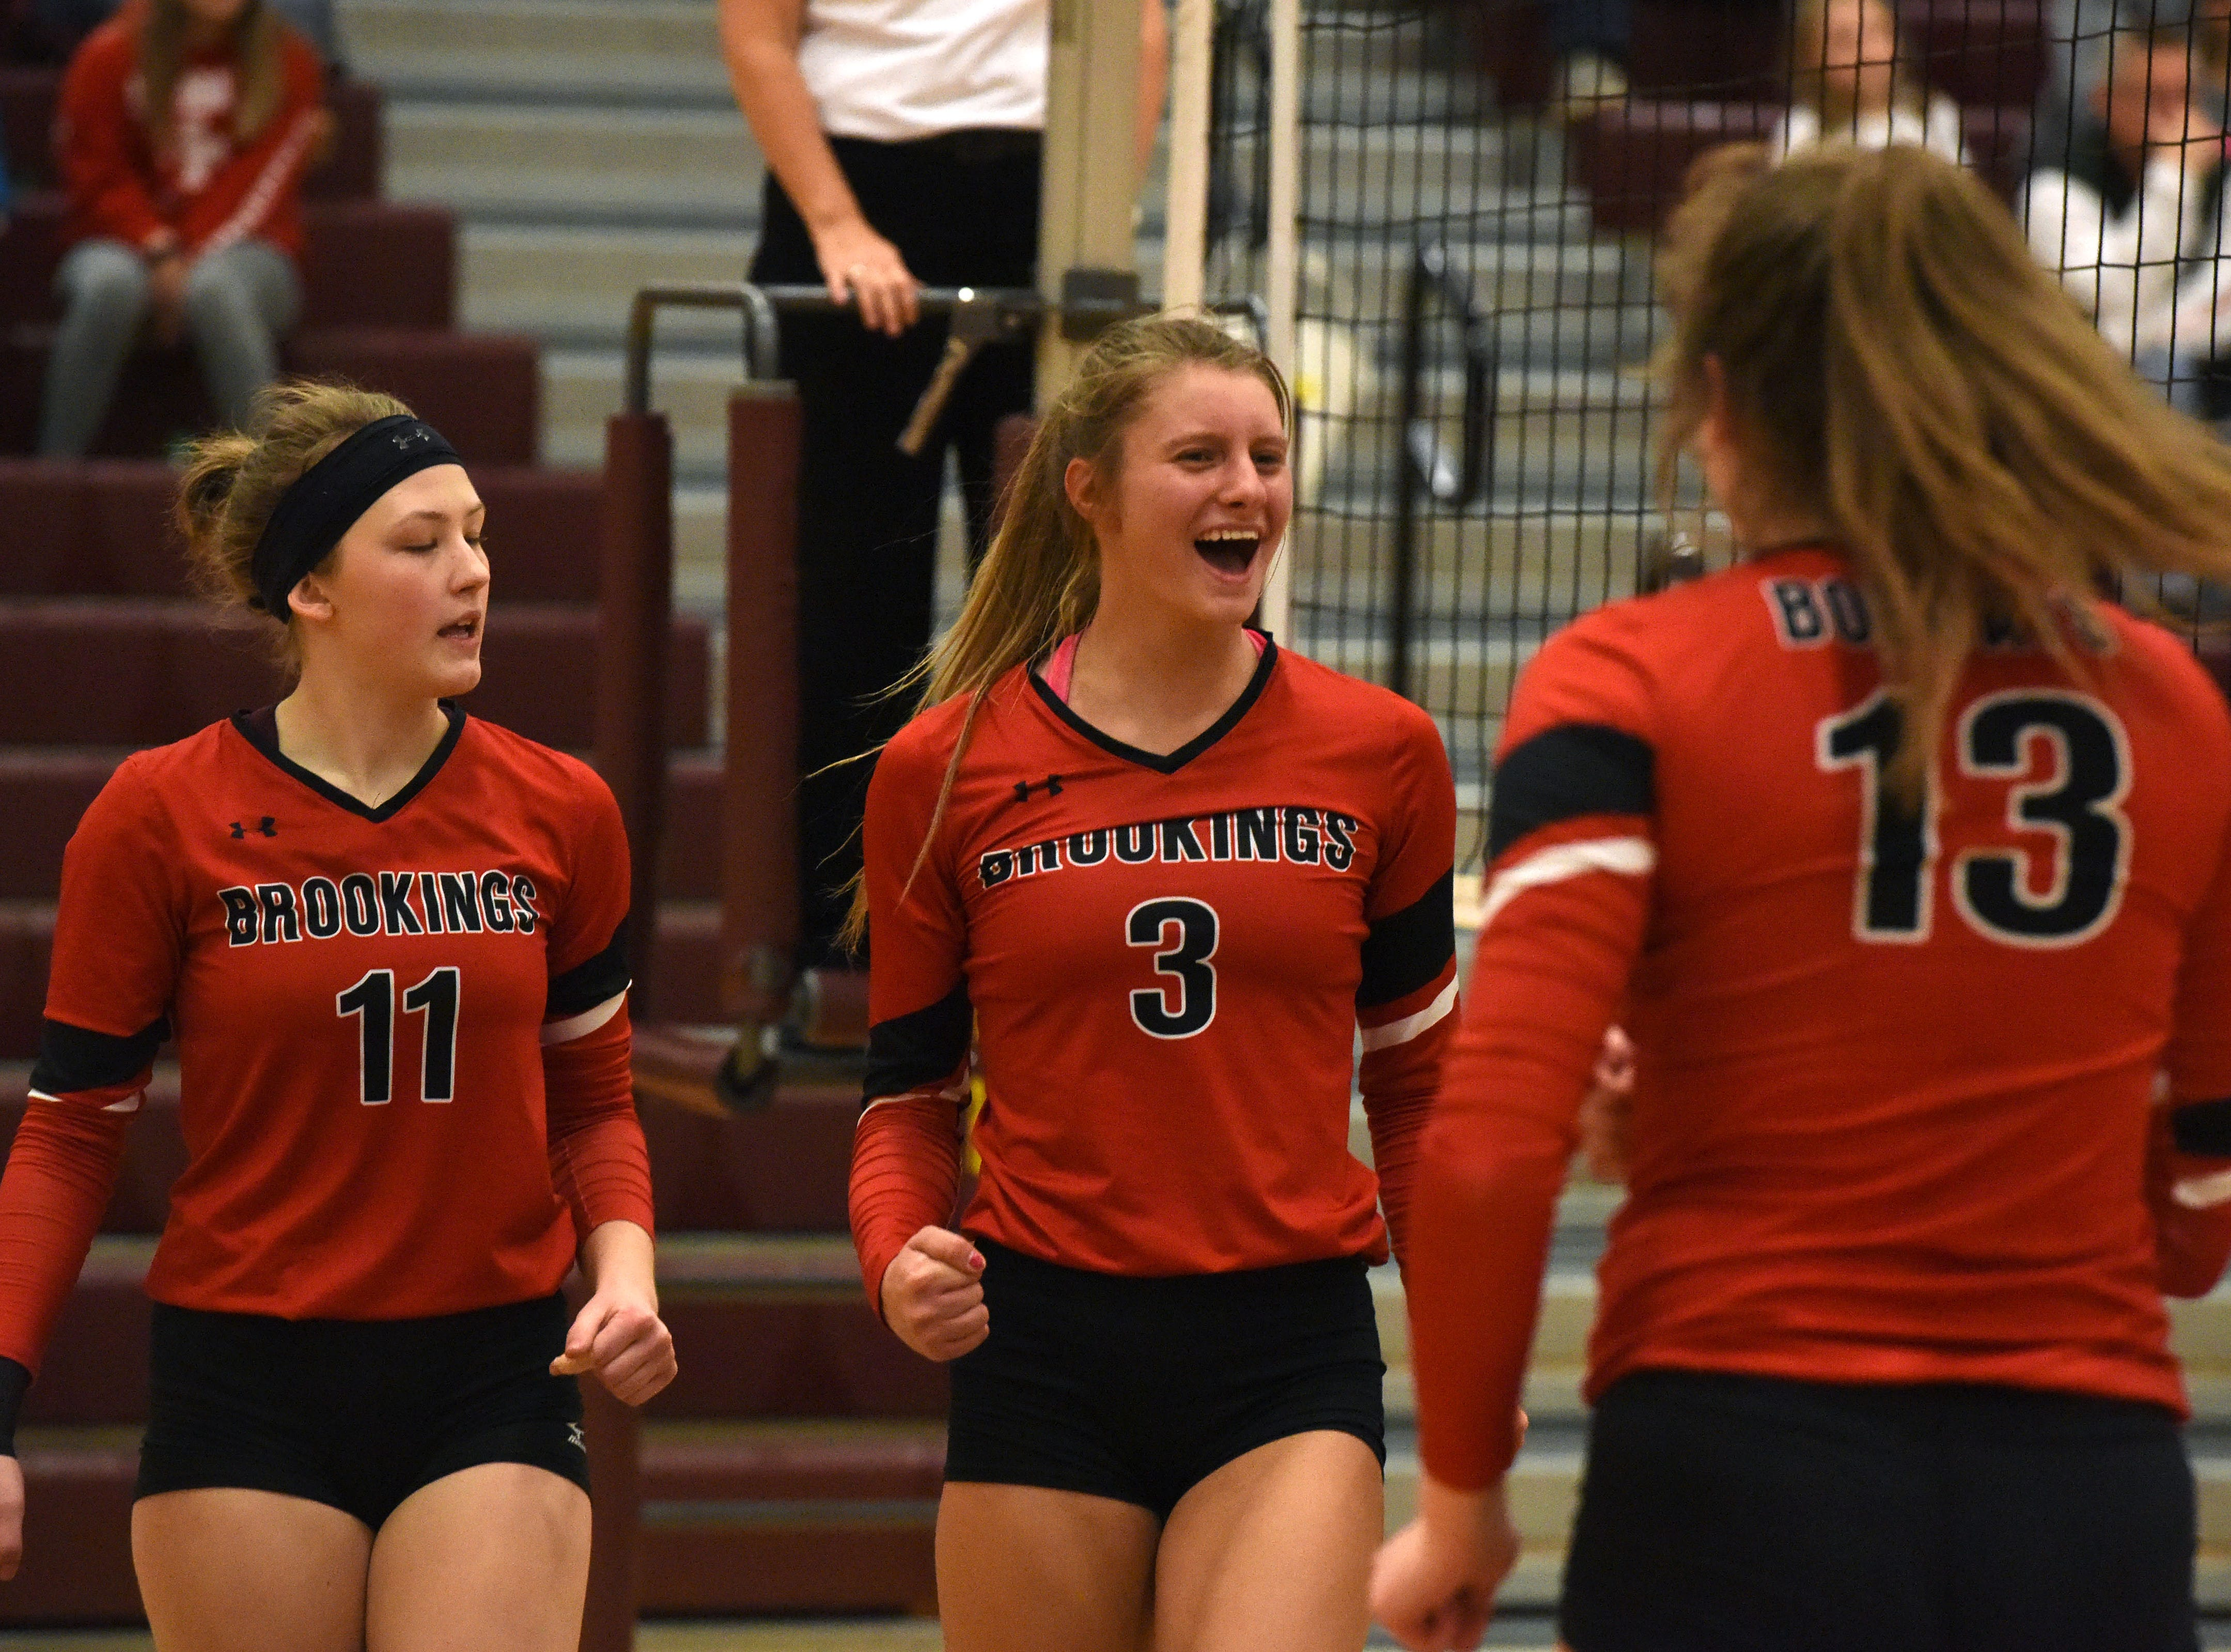 Brookings players react during a match against Harrisburg Tuesday, Oct. 30, 2018 in Harrisburg, S.D.